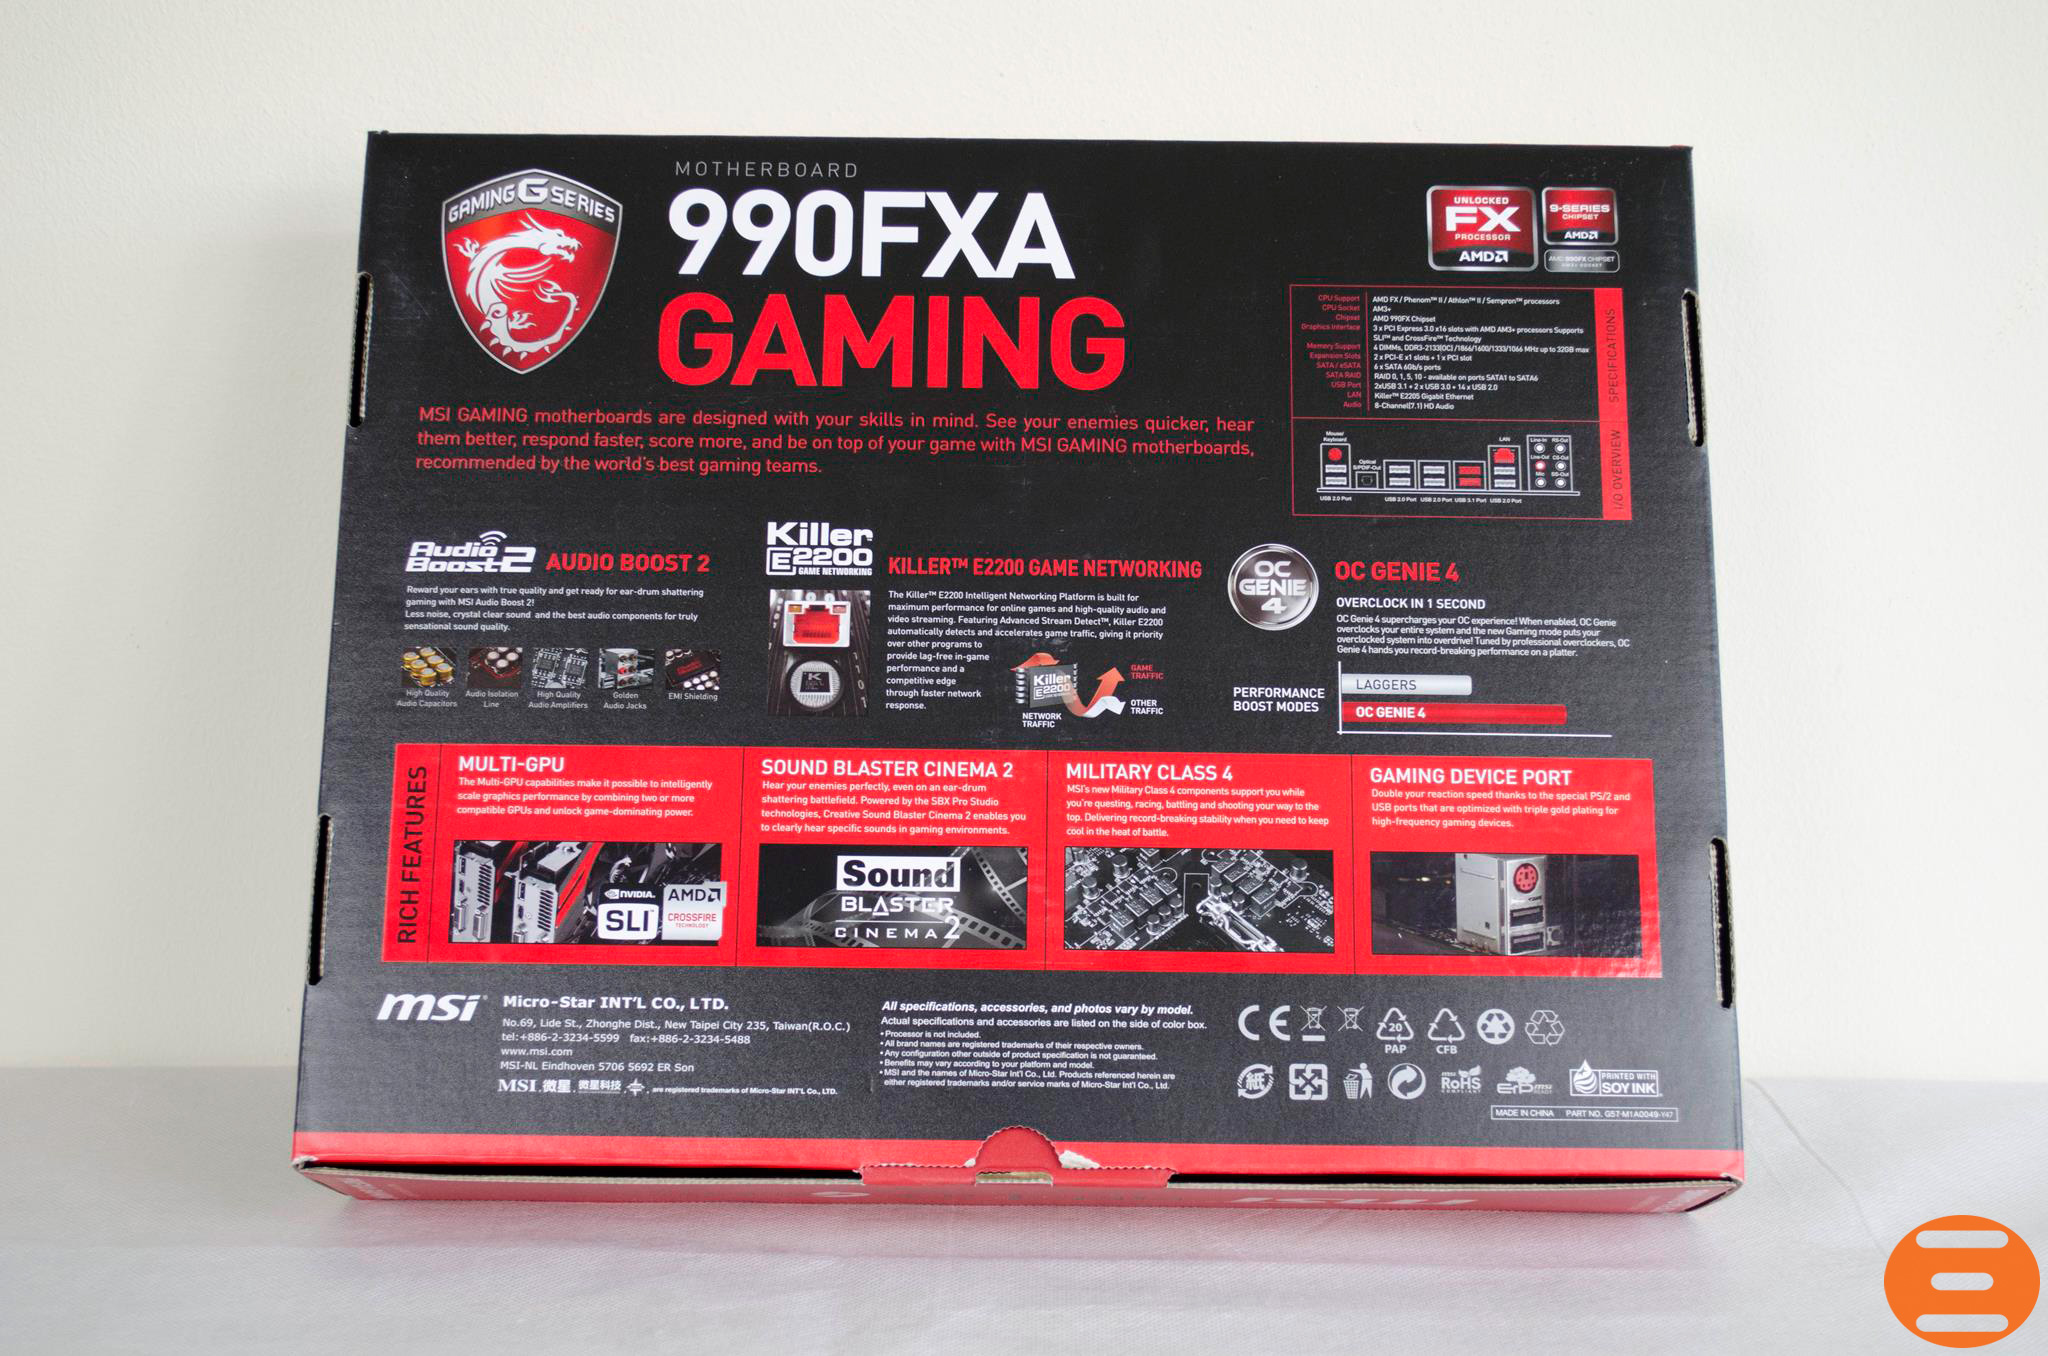 MSI-990FXA-Gaming-Motherboard_1